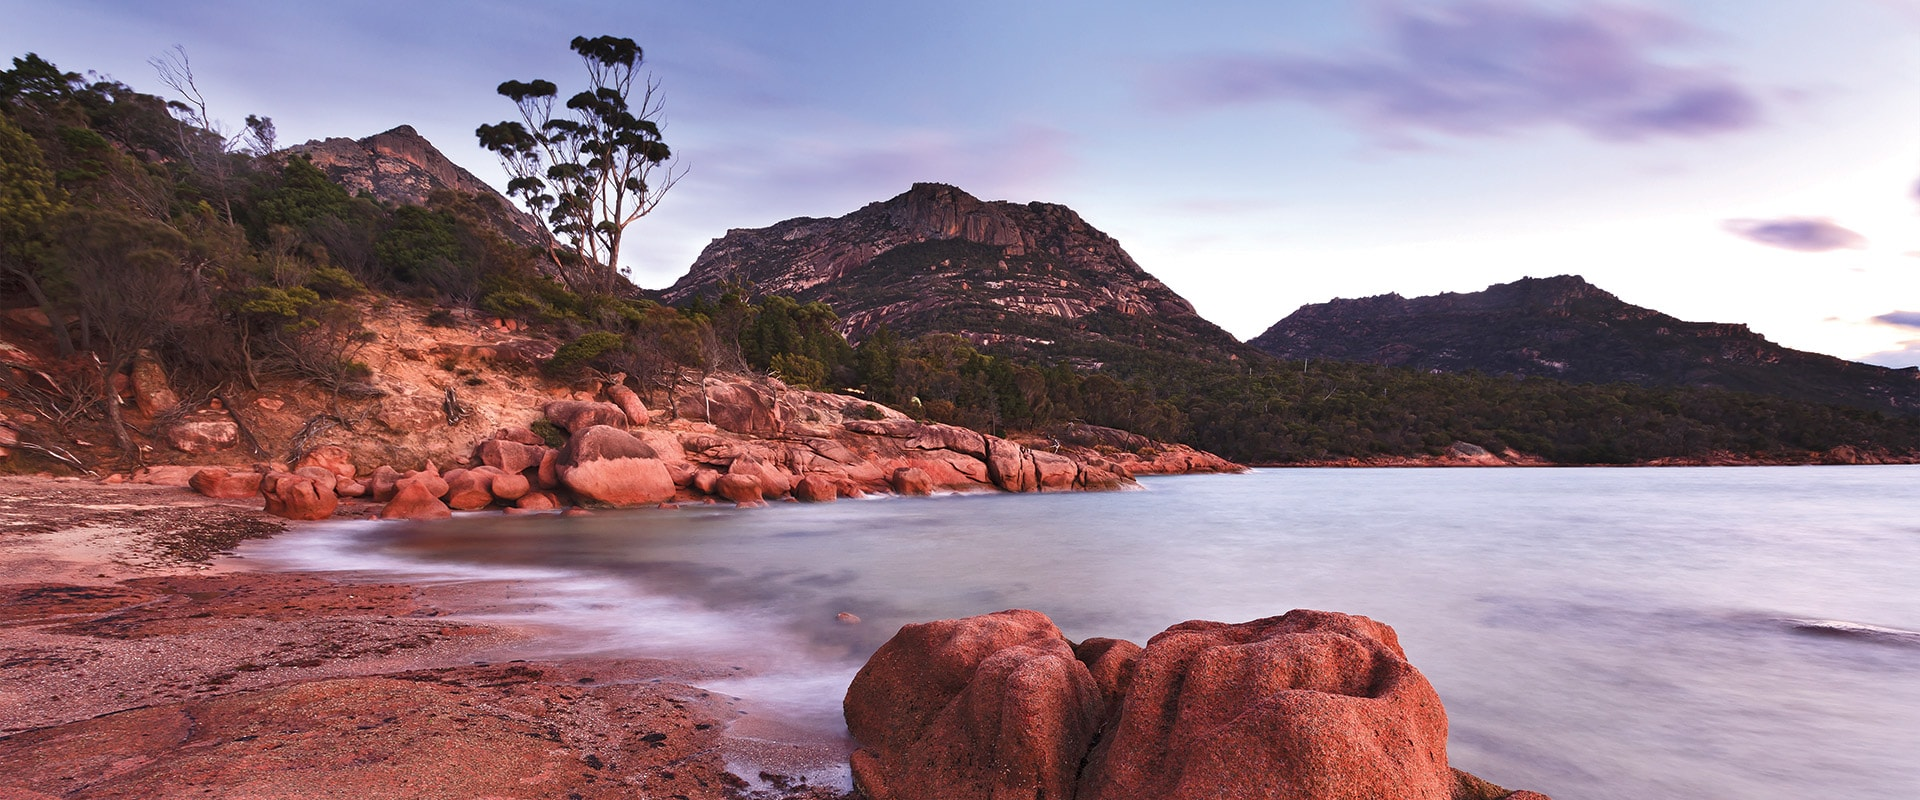 Pristine beach and rocks in Freycinet National Park, Tasmania